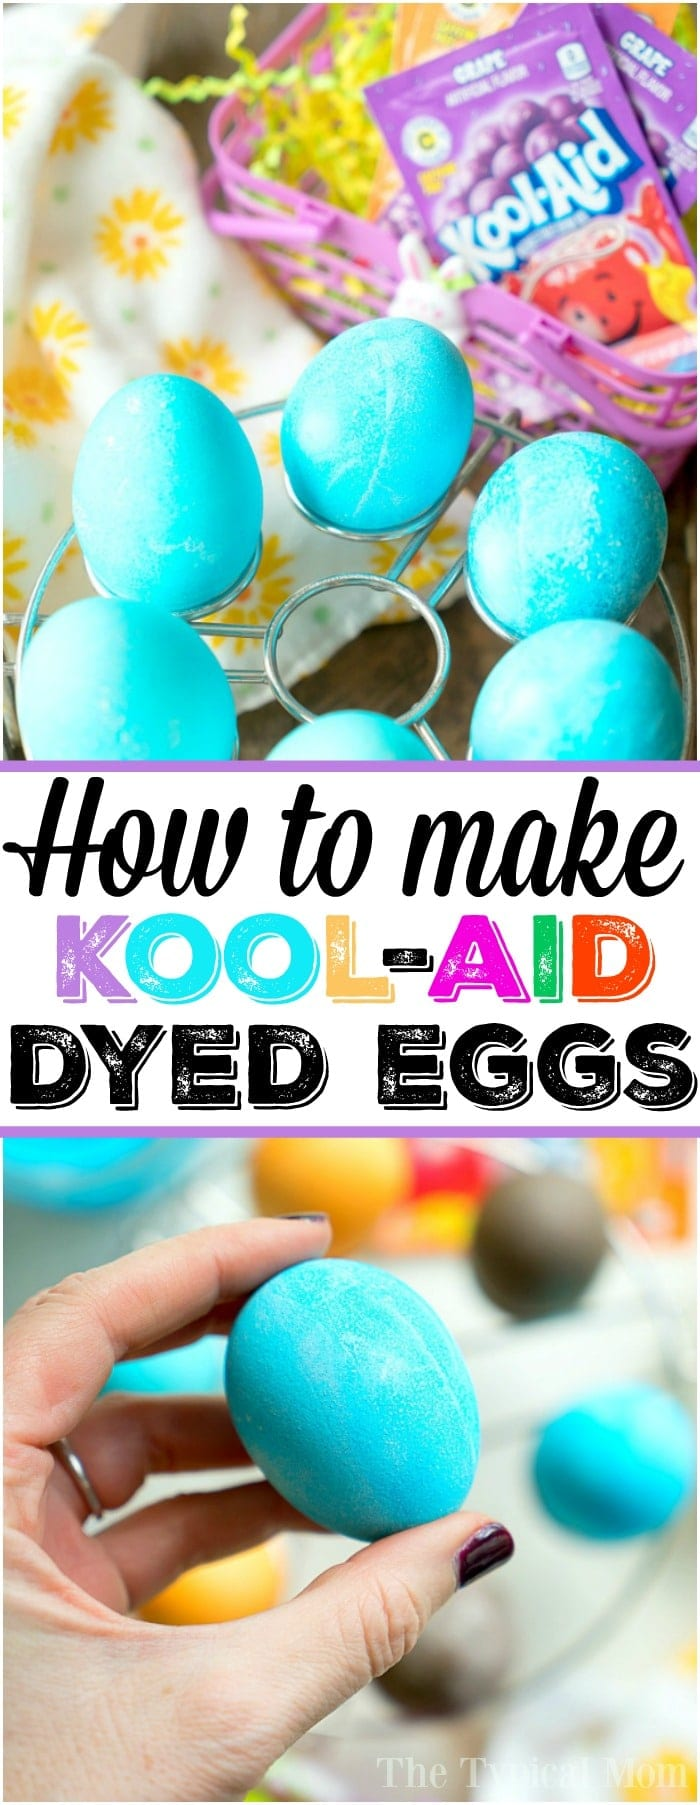 This is how to dye eggs with Kool Aid for Easter or just for fun! Dyeing eggs without the use of any chemicals is always best when children are involved and this way is simple and very cheap to do too! How to make the perfect hard boiled eggs and then dye them any color you want using this simple method is here. #koolaid #easter #eggs #dye #dying #dyeing #howto #natural #safe #easy #cheap #color